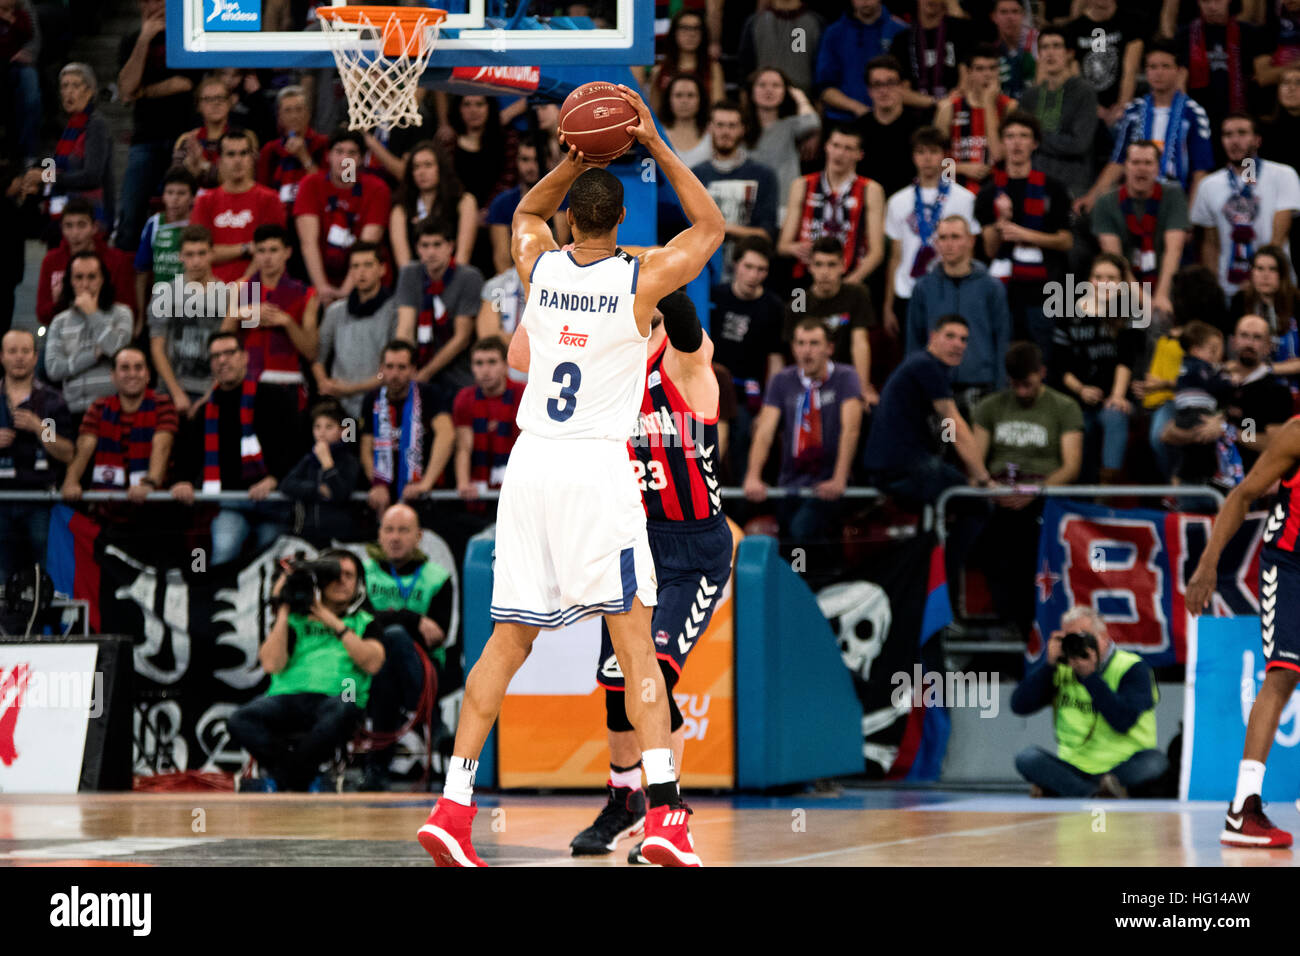 Vitoria, Spain. 3rd January, 2017. Anthony Randolph (Real Madrid) shoots the ball during the basketball match of - Stock Image